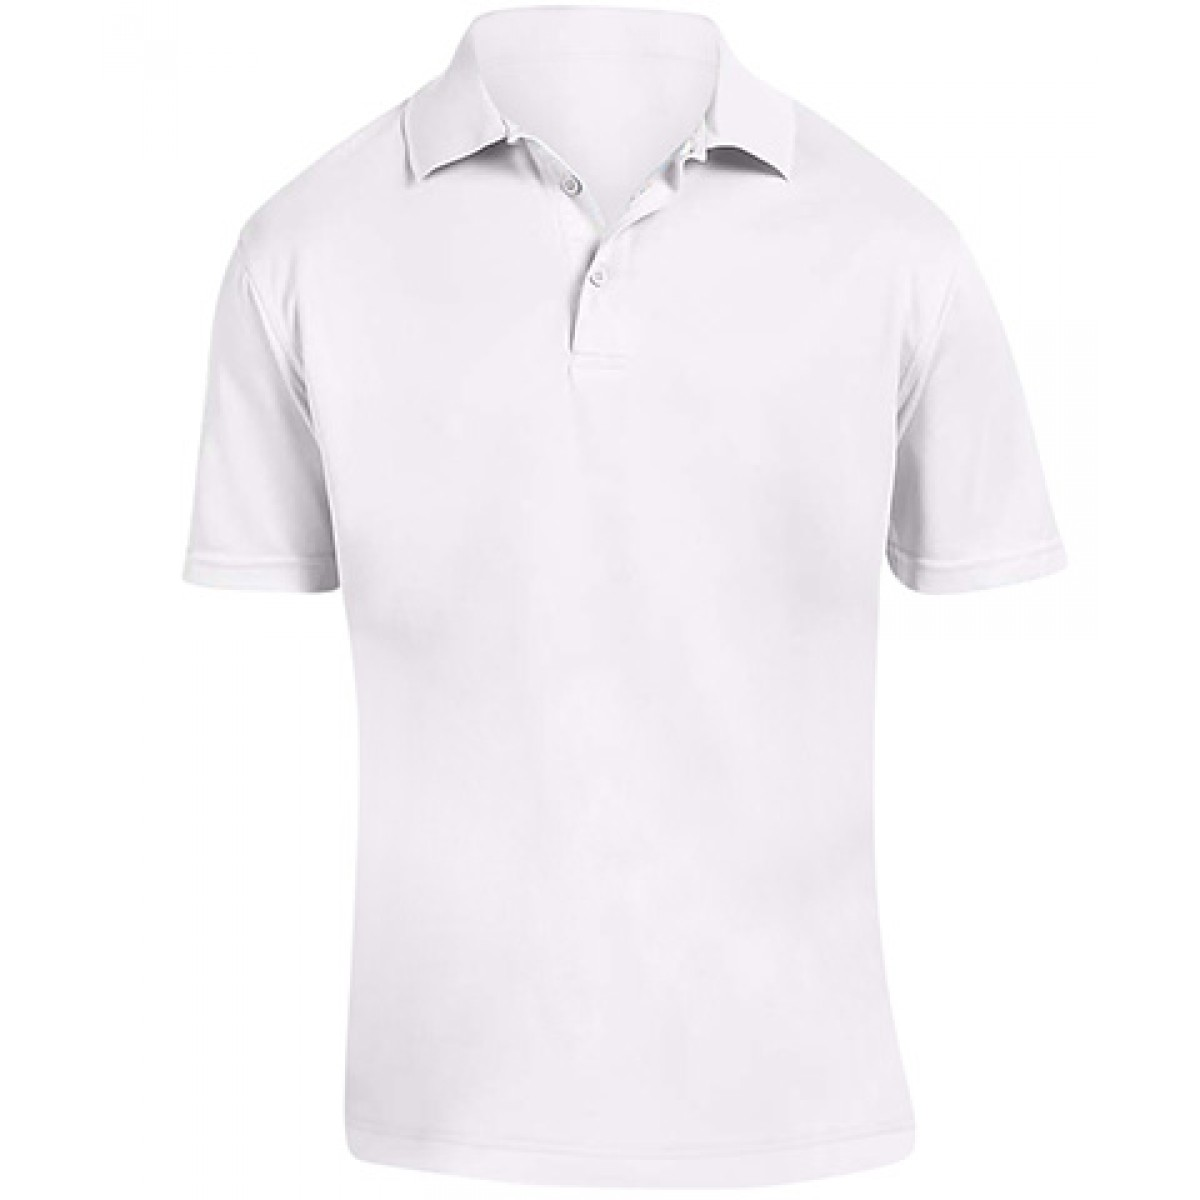 Men's 4 oz. Polytech Polo-White-5XL